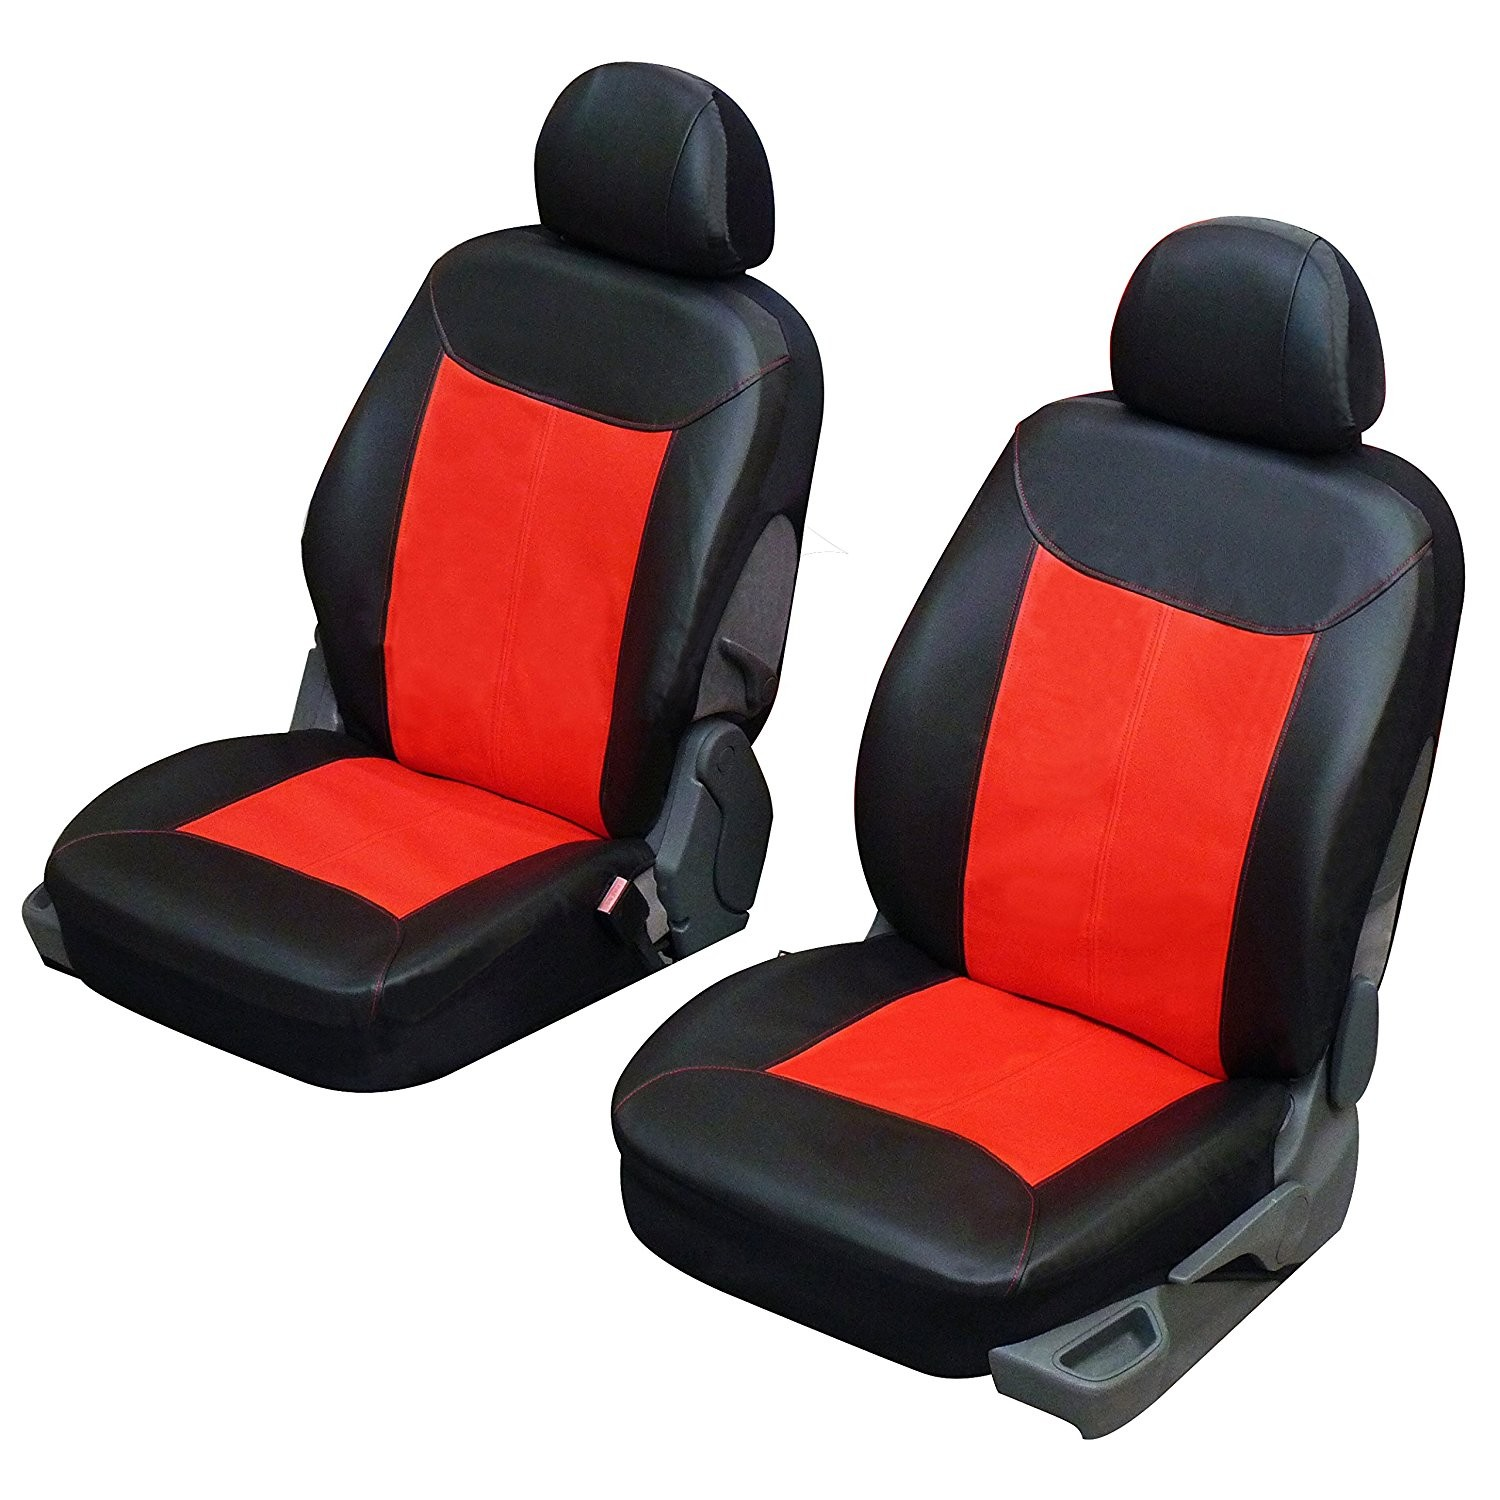 housse de siege clio 2 18257 siege id es. Black Bedroom Furniture Sets. Home Design Ideas